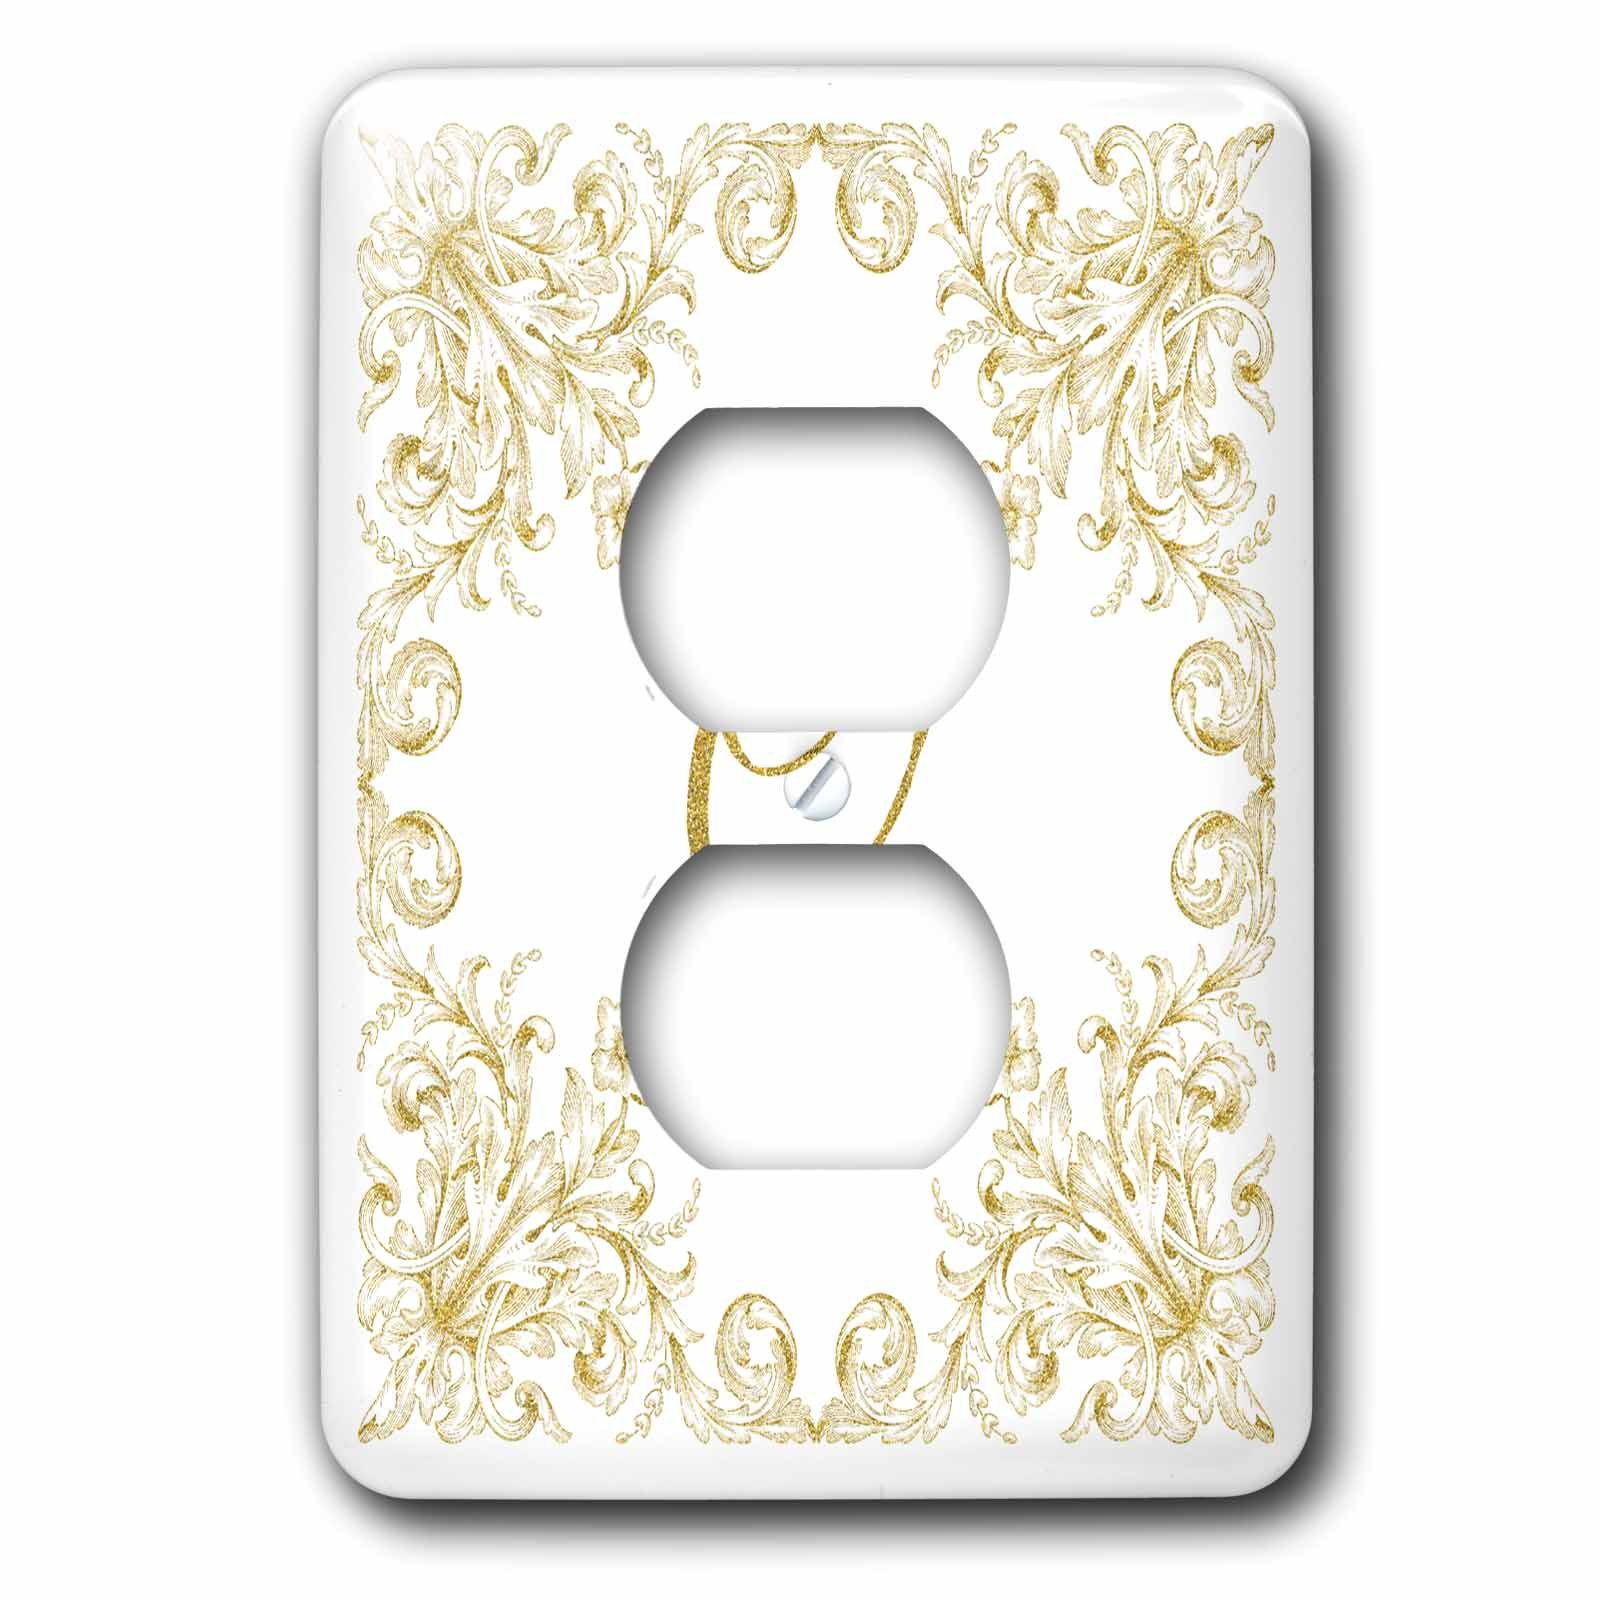 3dRose Uta Naumann Personal Monogram Initials - Letter Q Personal Luxury Vintage Glitter Monogram-Personalized Initial - Light Switch Covers - 2 plug outlet cover (lsp_275316_6) by 3dRose (Image #1)